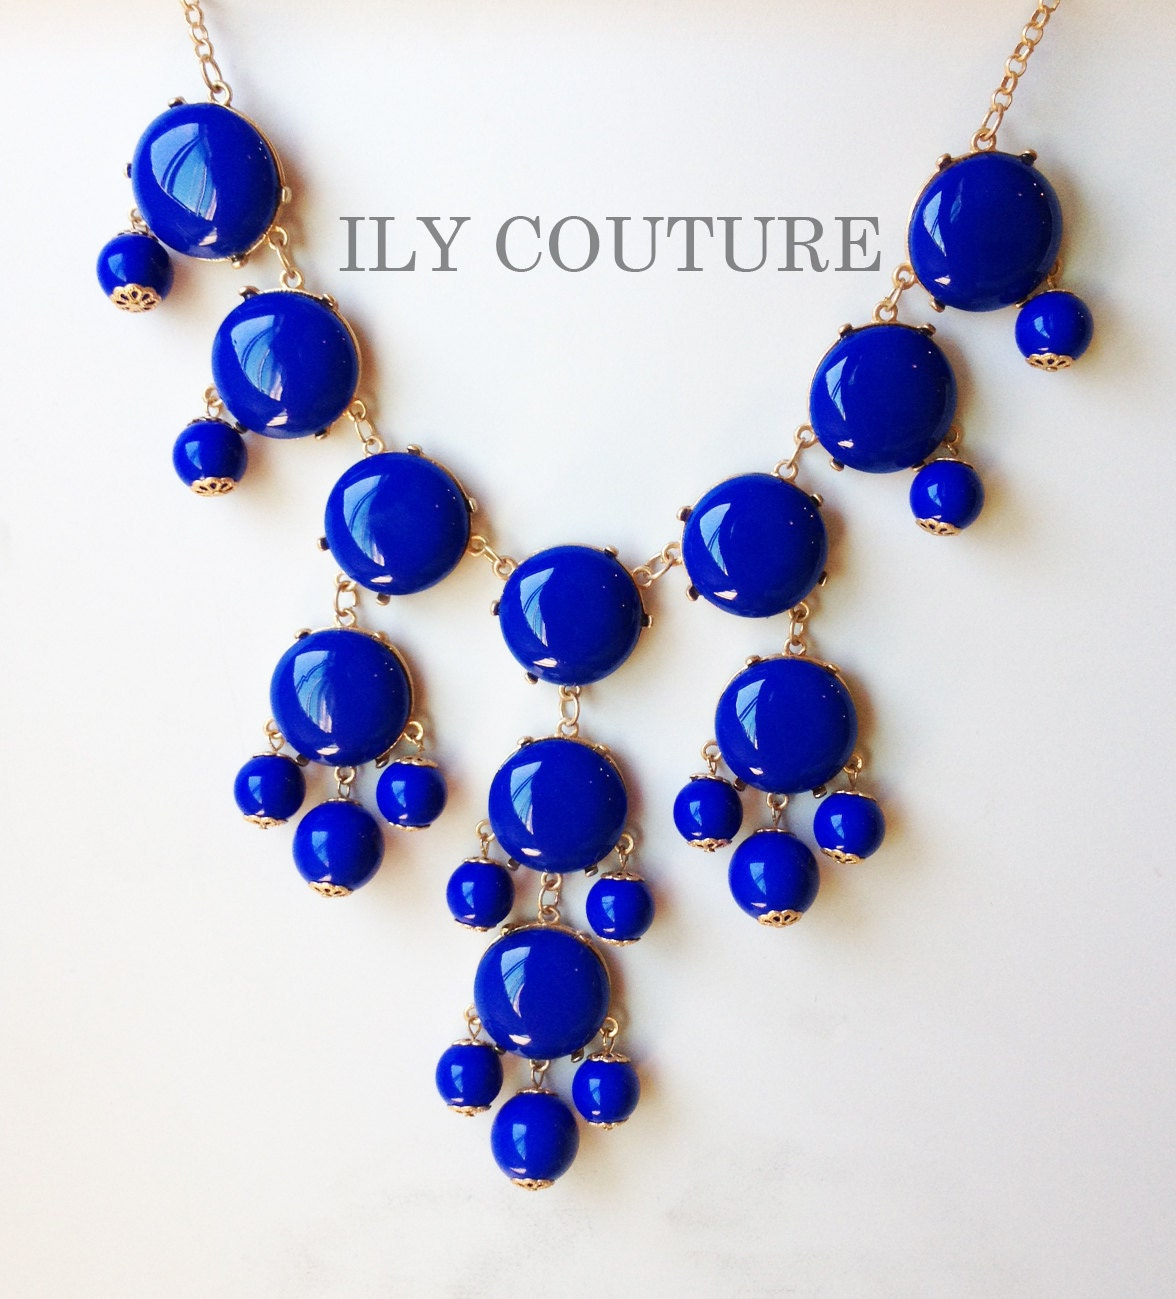 Blue Bubble Statement Necklace - Similar to Jcrew style